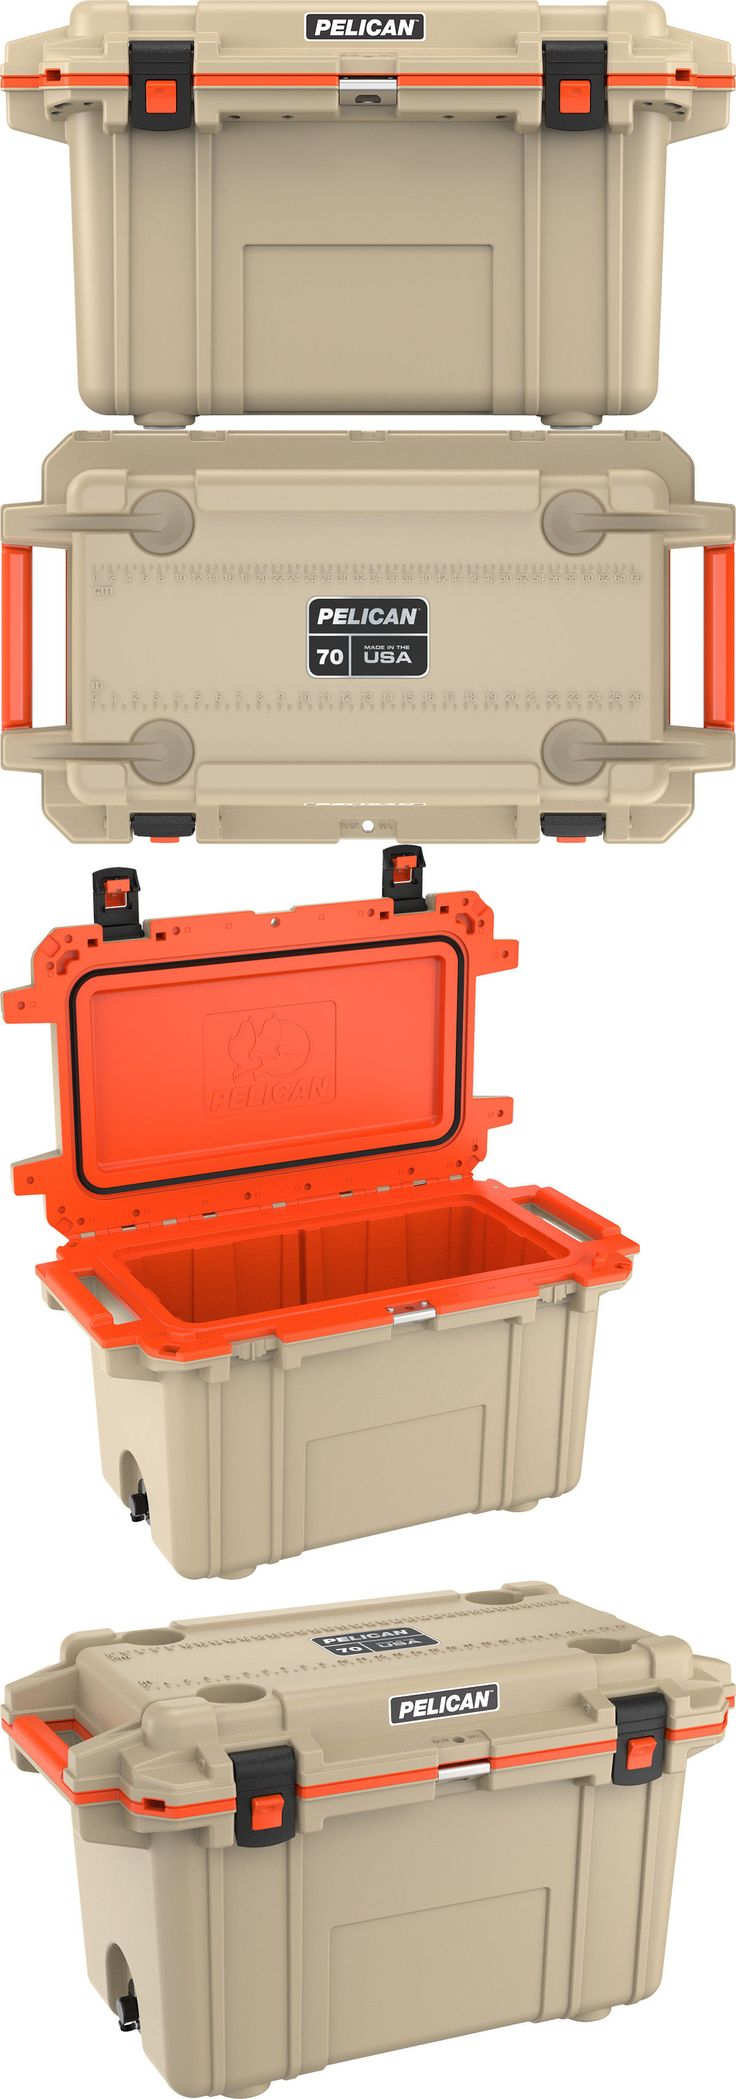 Camping Ice Boxes and Coolers 181382: Pelican Products 70 Quart Cooler Tan Orange 70Q-2Tanorg -> BUY IT NOW ONLY: $329 on eBay!